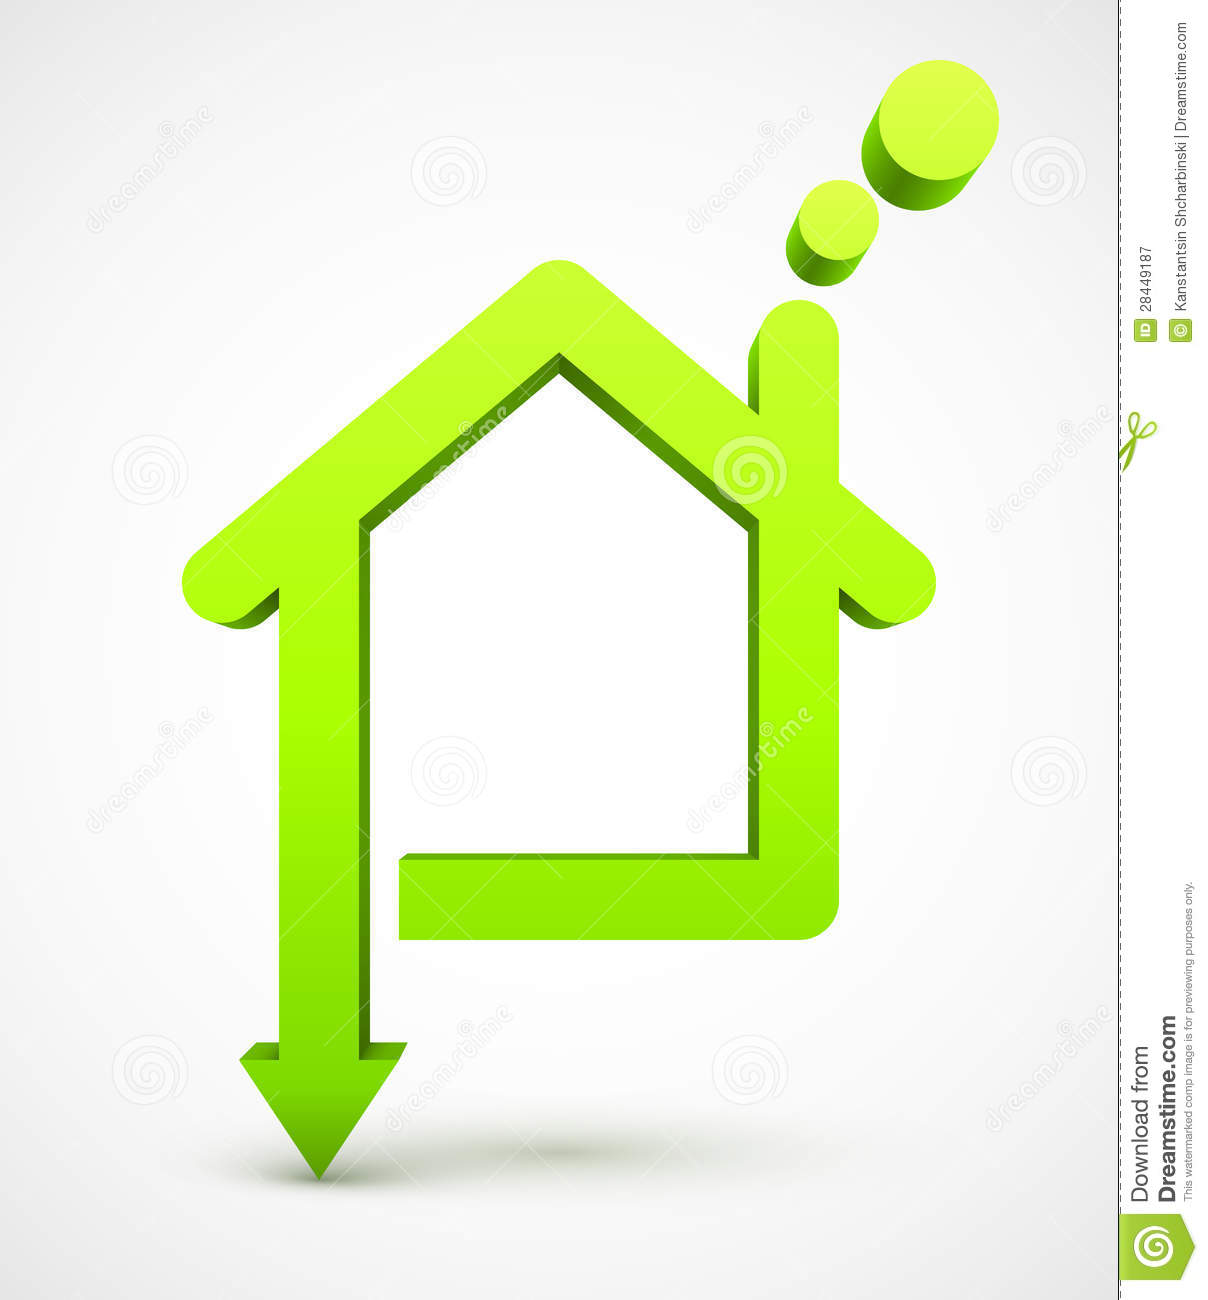 Green House Icon Royalty Free Stock Photography